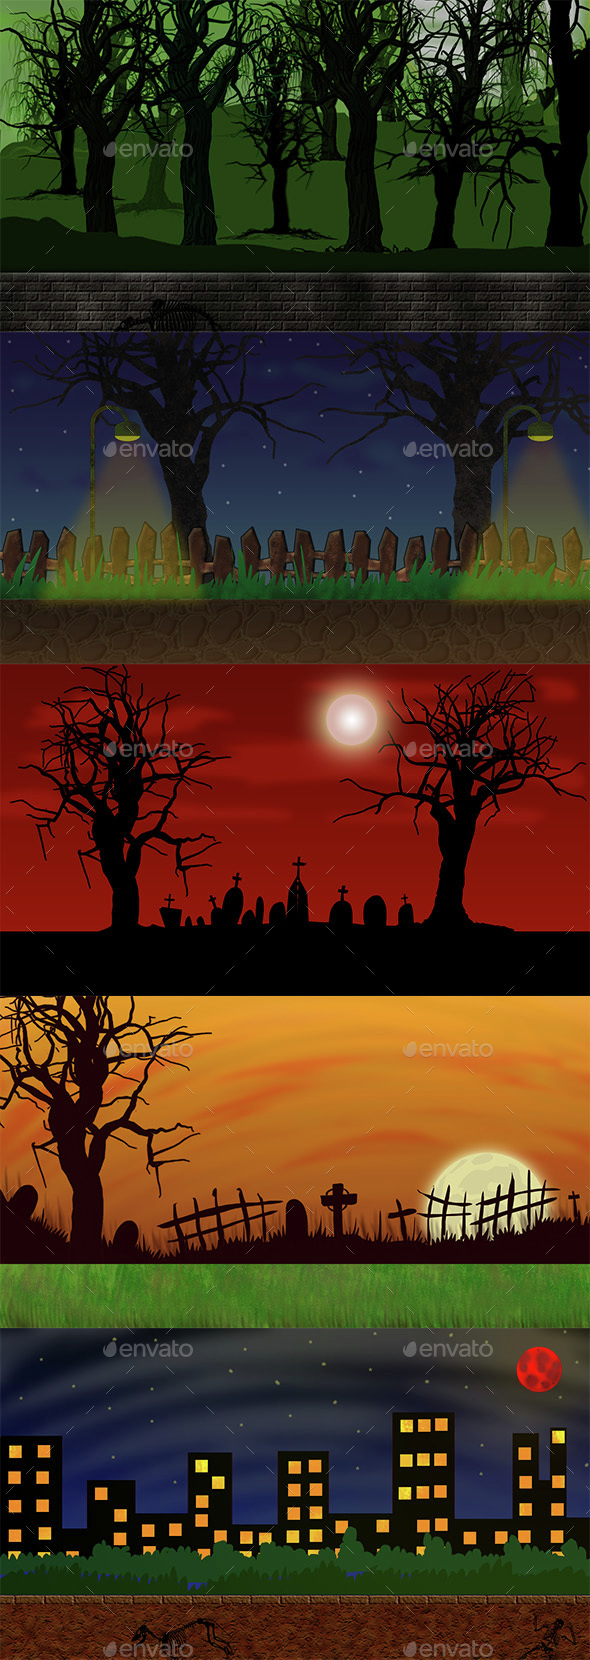 Creepy Backgrounds for Zombie Games - Backgrounds Game Assets